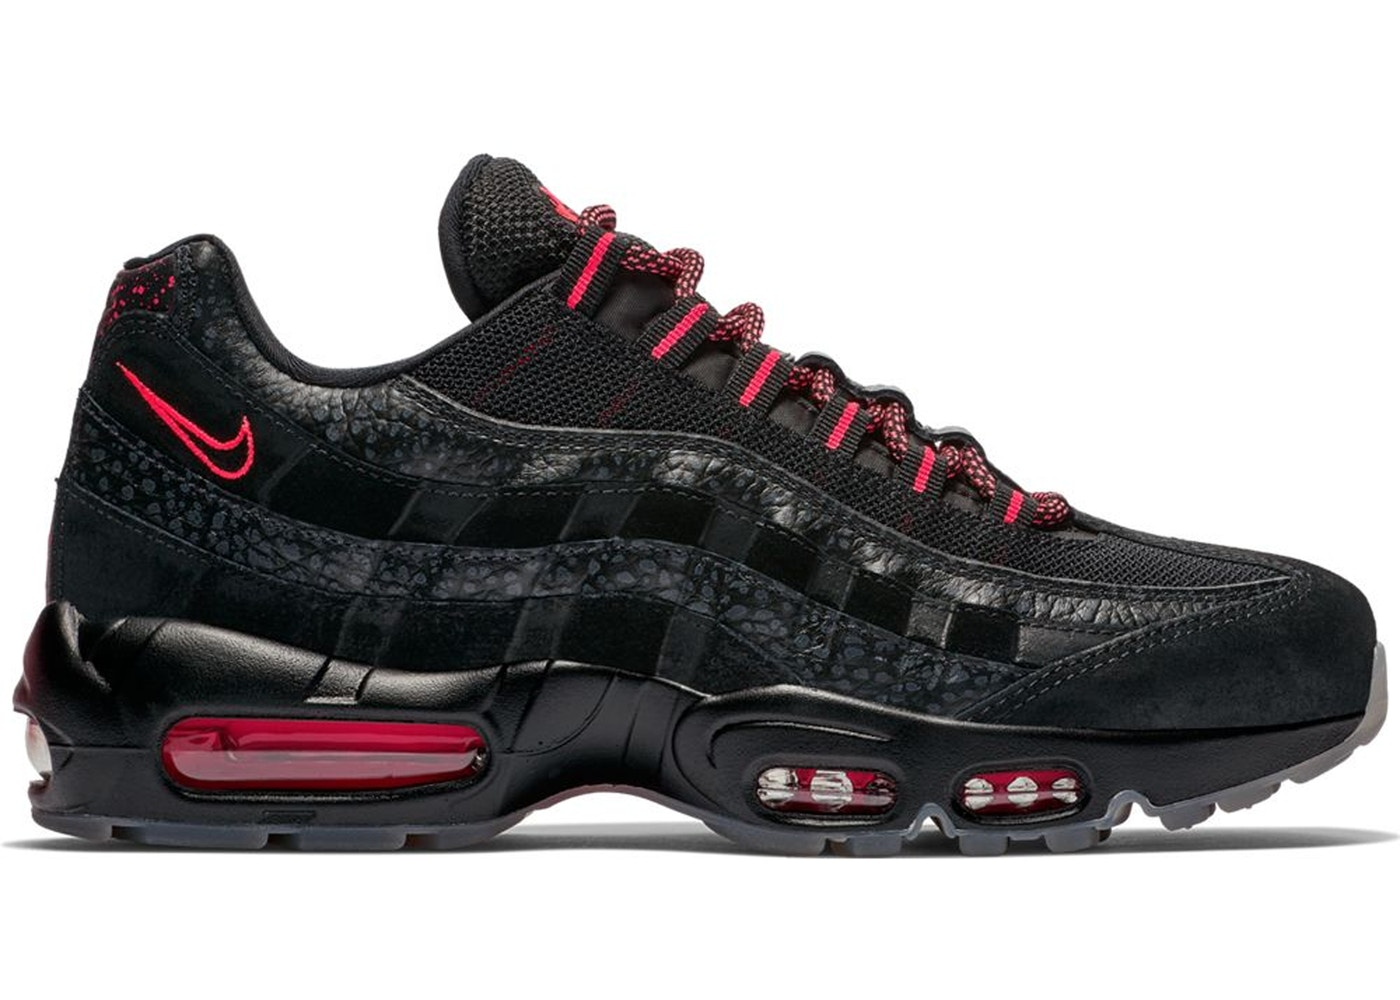 128f3ac095ab5 Buy Nike Air Max 95 Shoes   Deadstock Sneakers